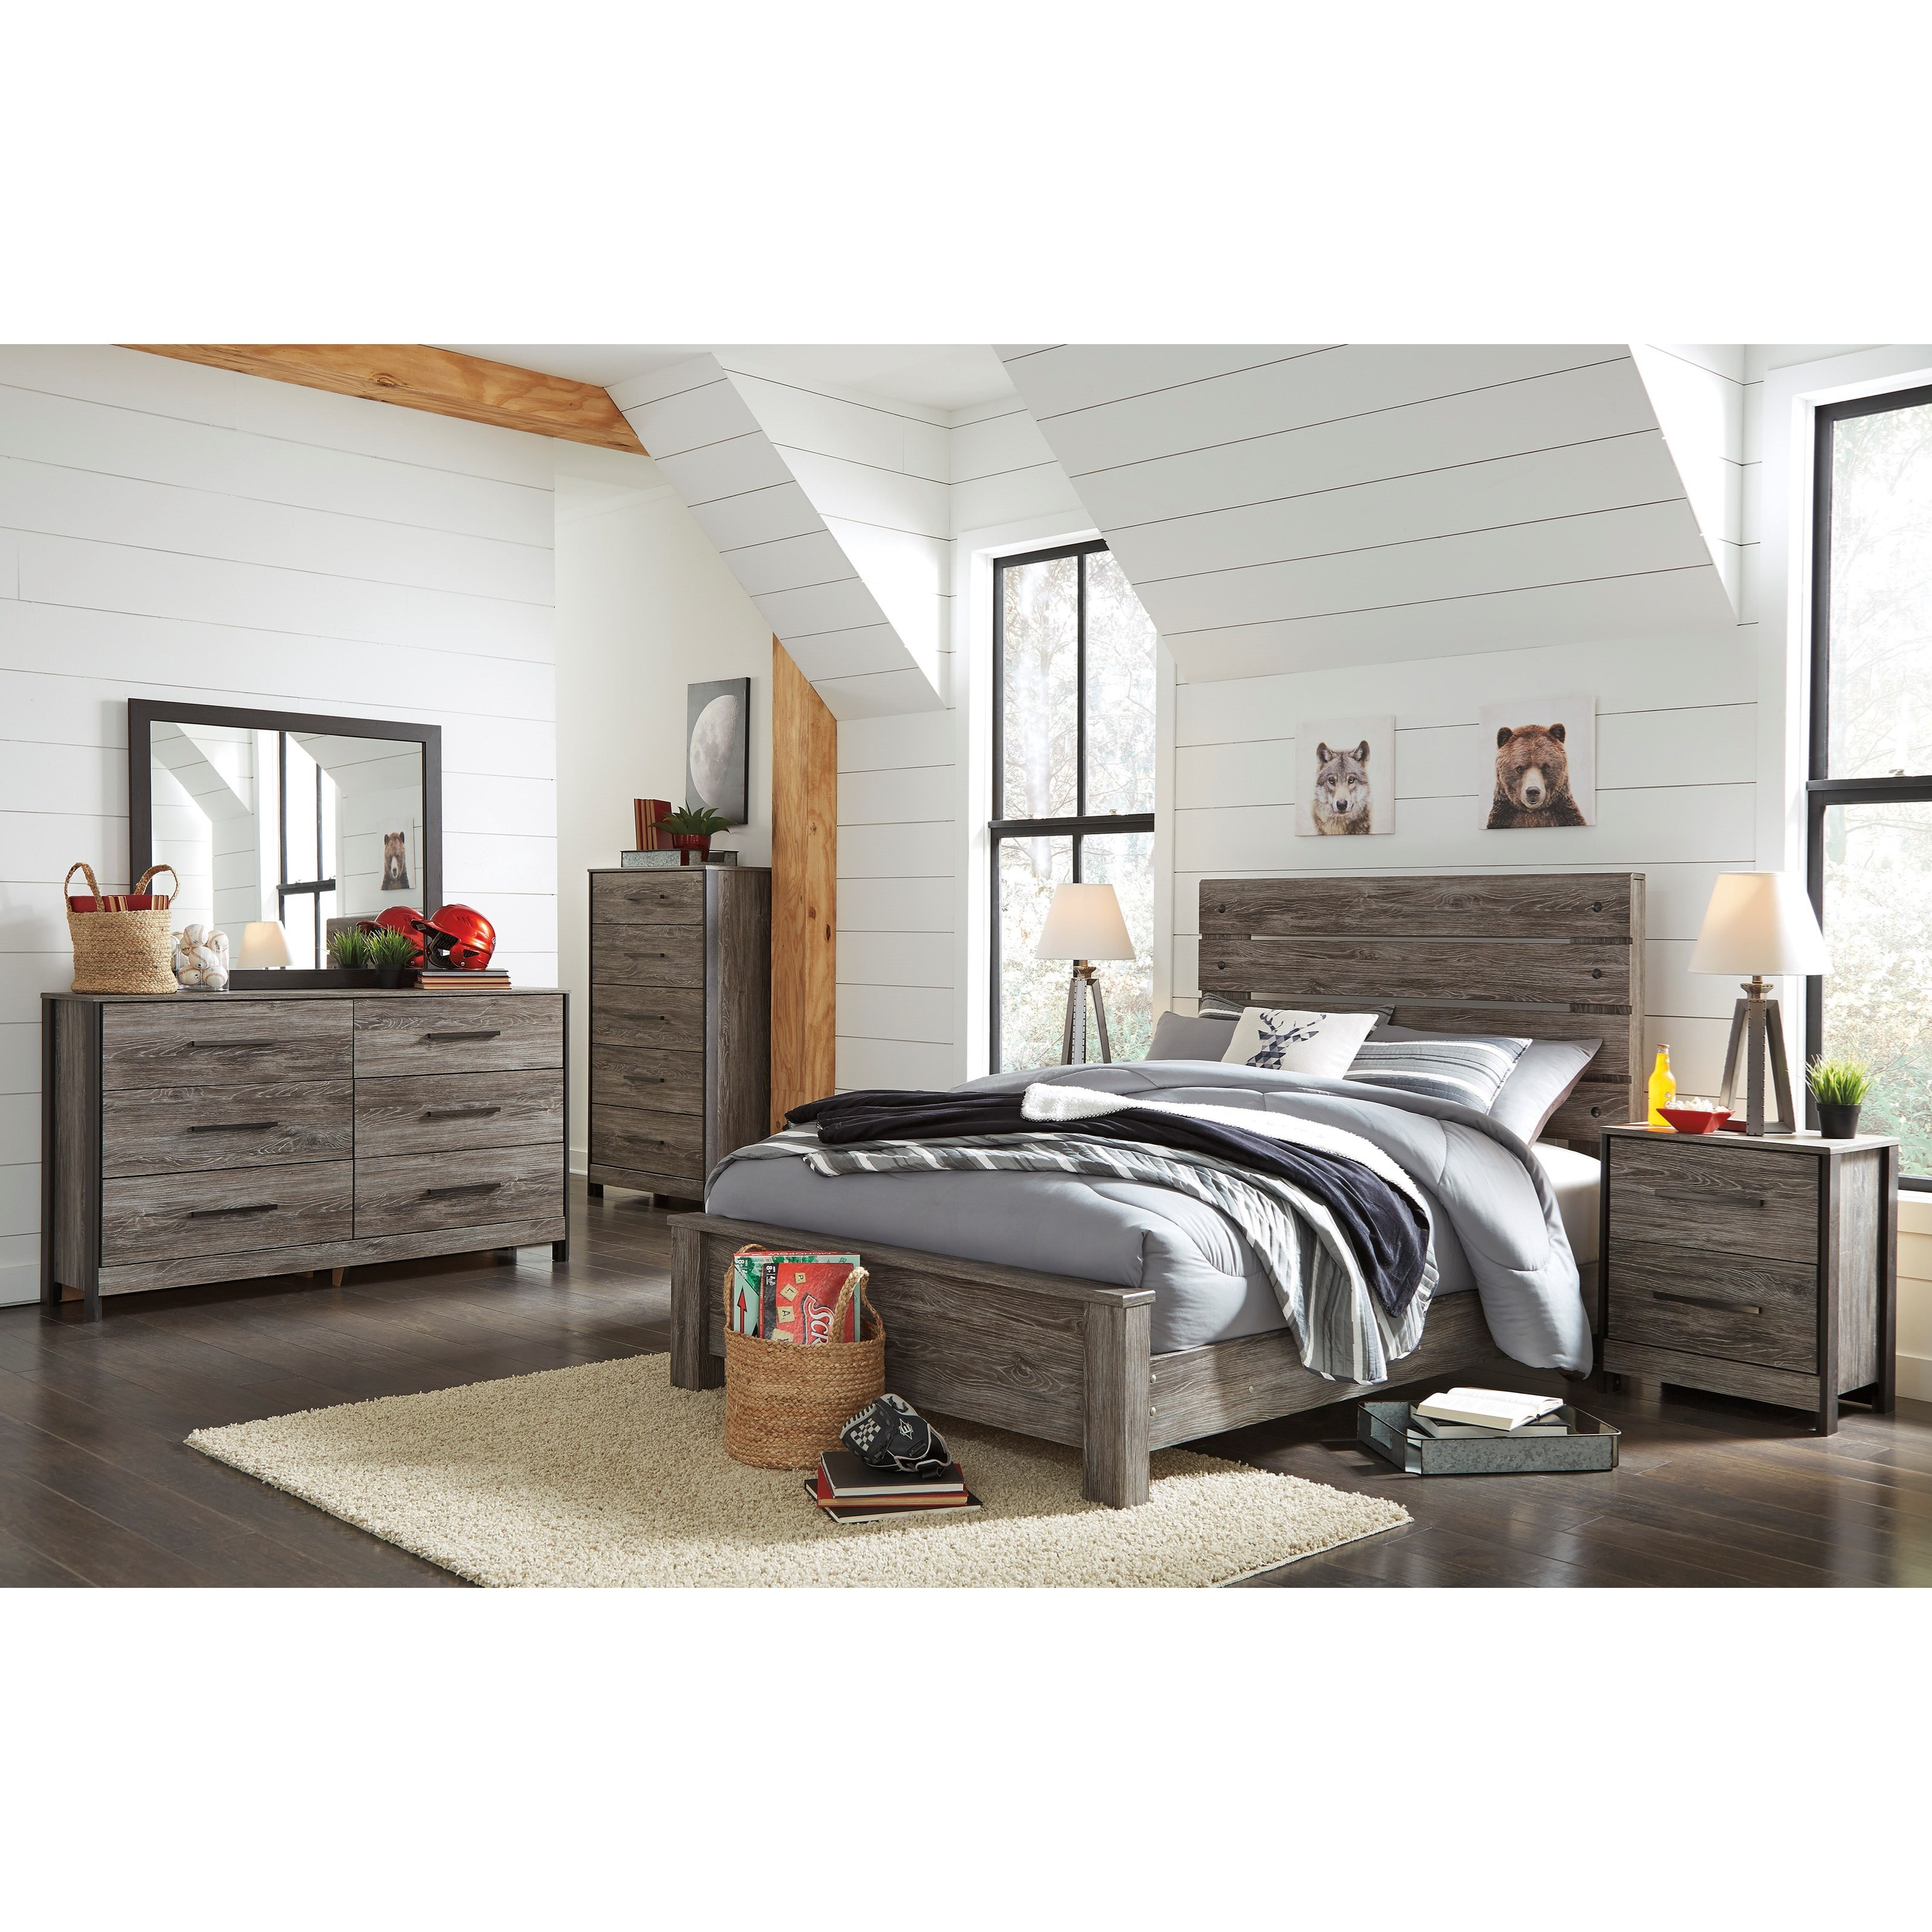 Cazenfeld Full Bedroom Group by Signature Design by Ashley at Northeast Factory Direct